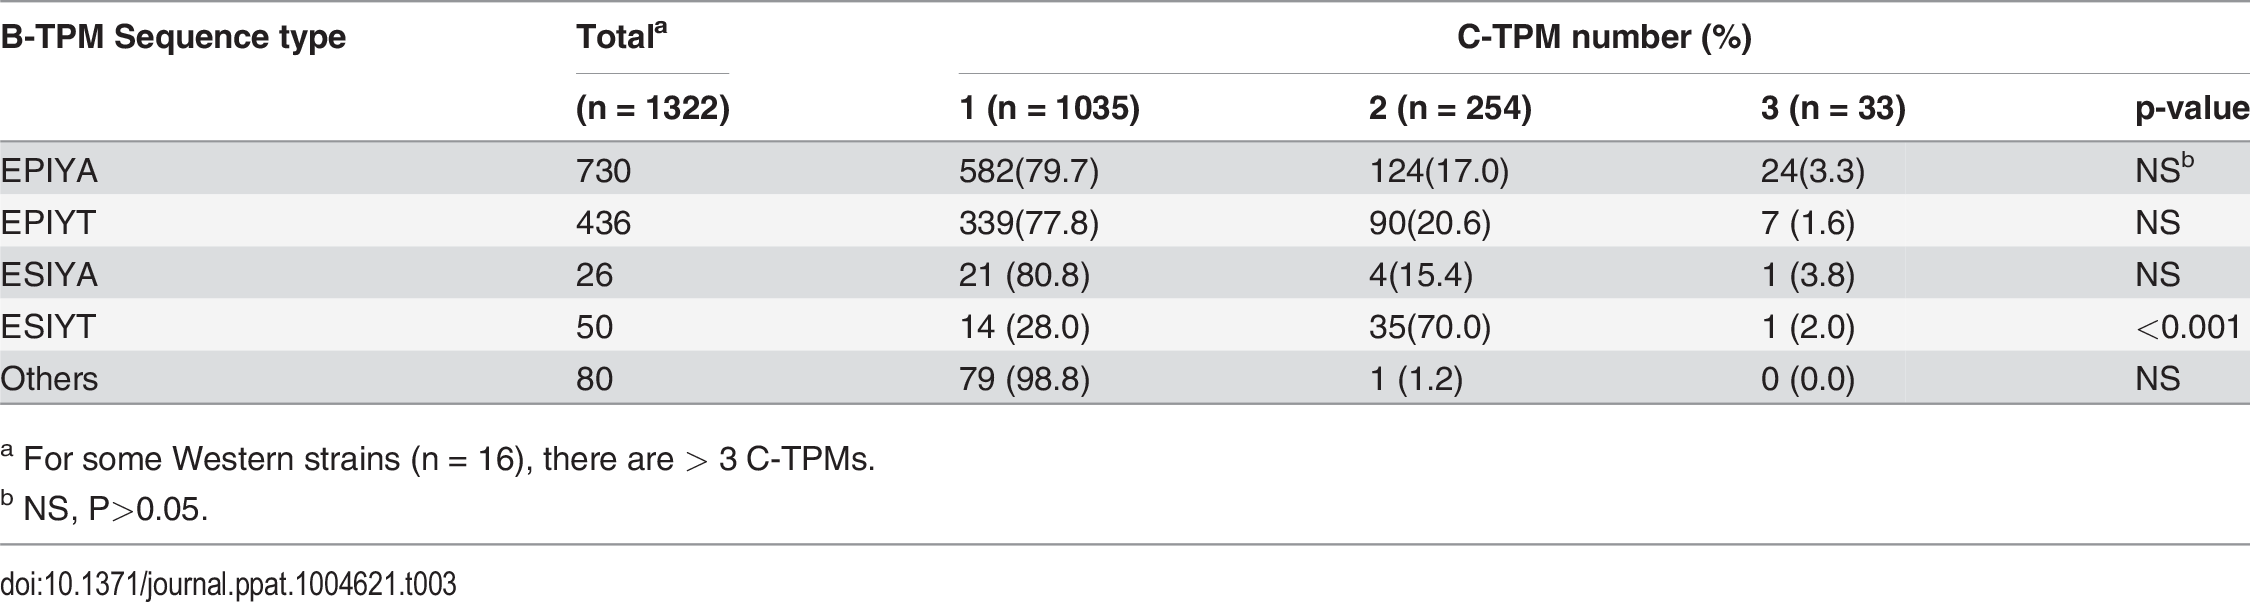 Relation of B-domain TPM sequence type to number of C-domain TPMs in 1322 Western CagA sequences.